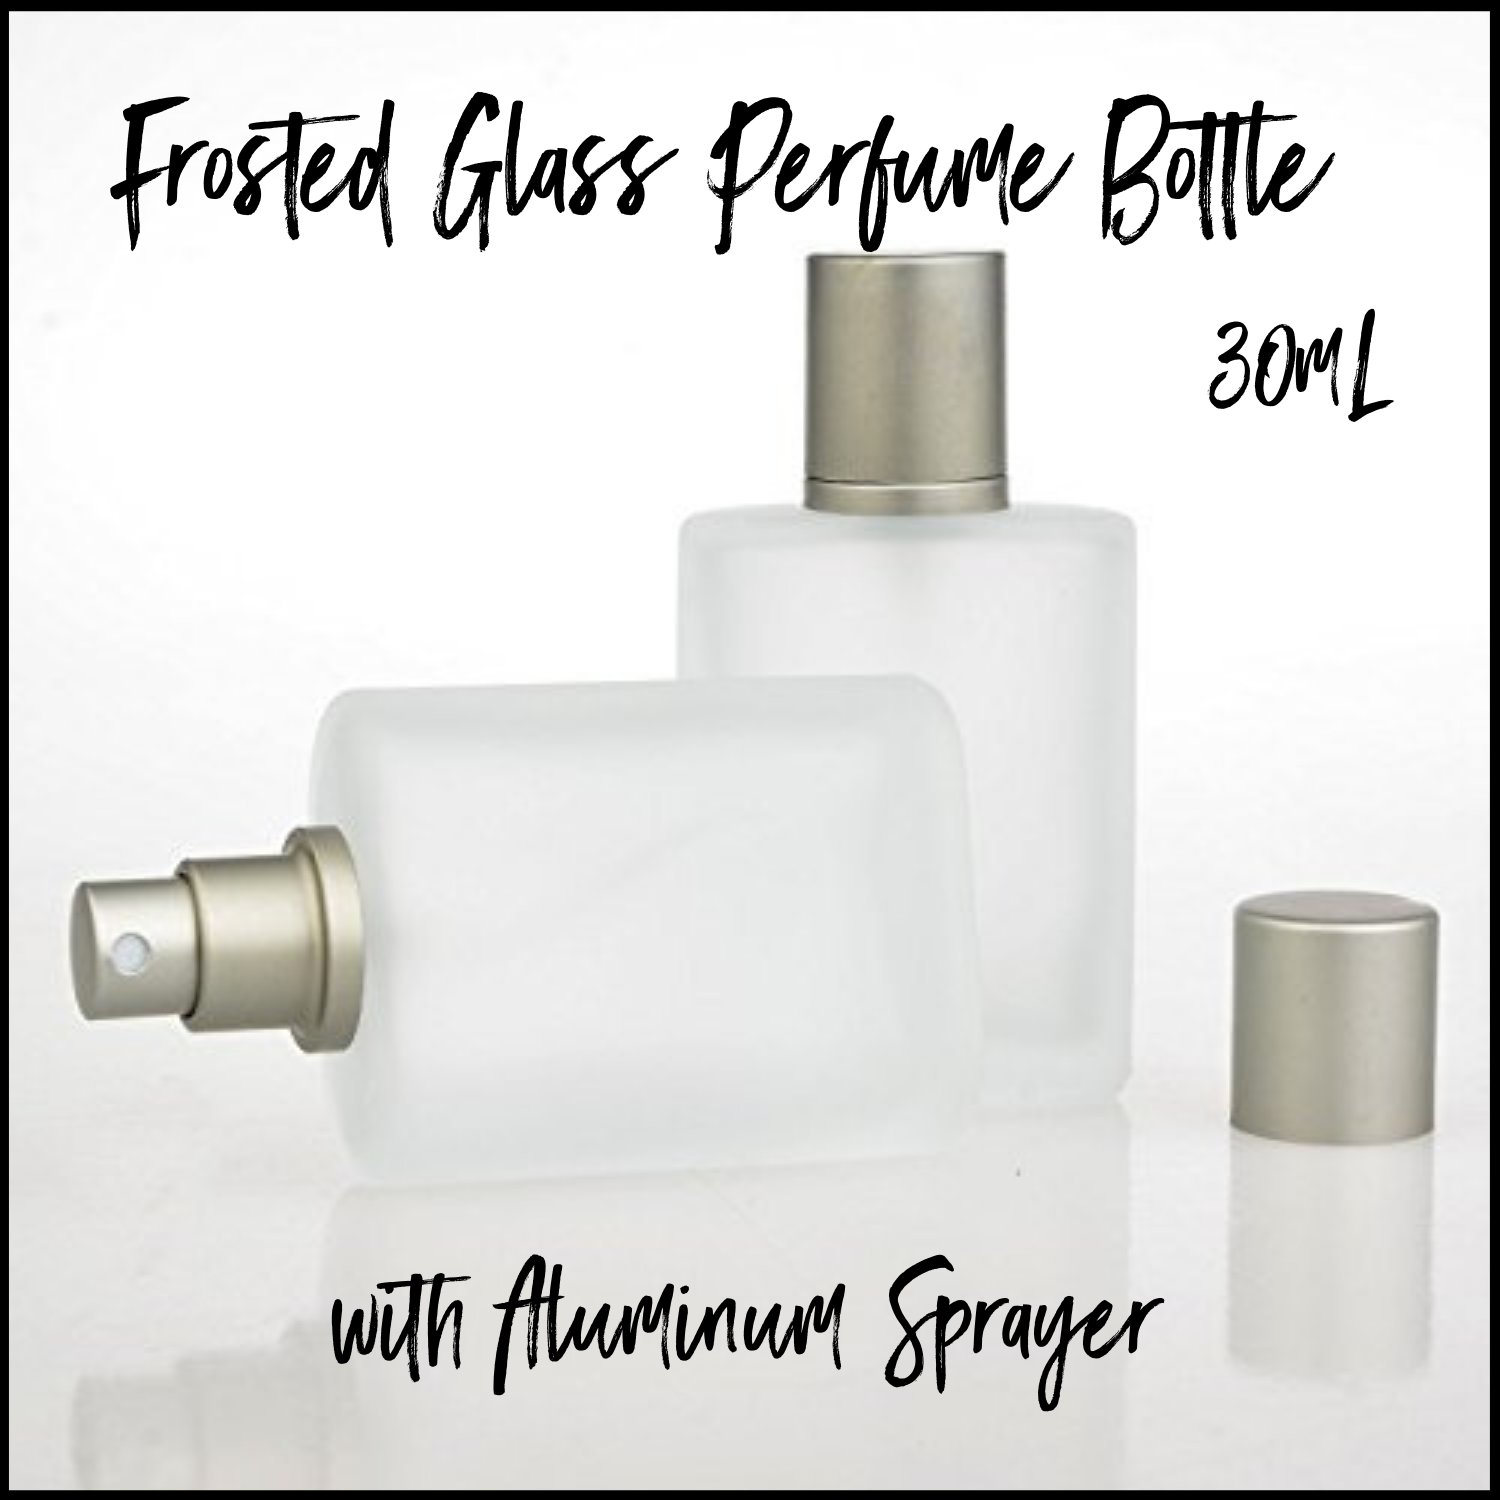 30mL Frosted Glass Perfume Bottle with Aluminum Sprayer